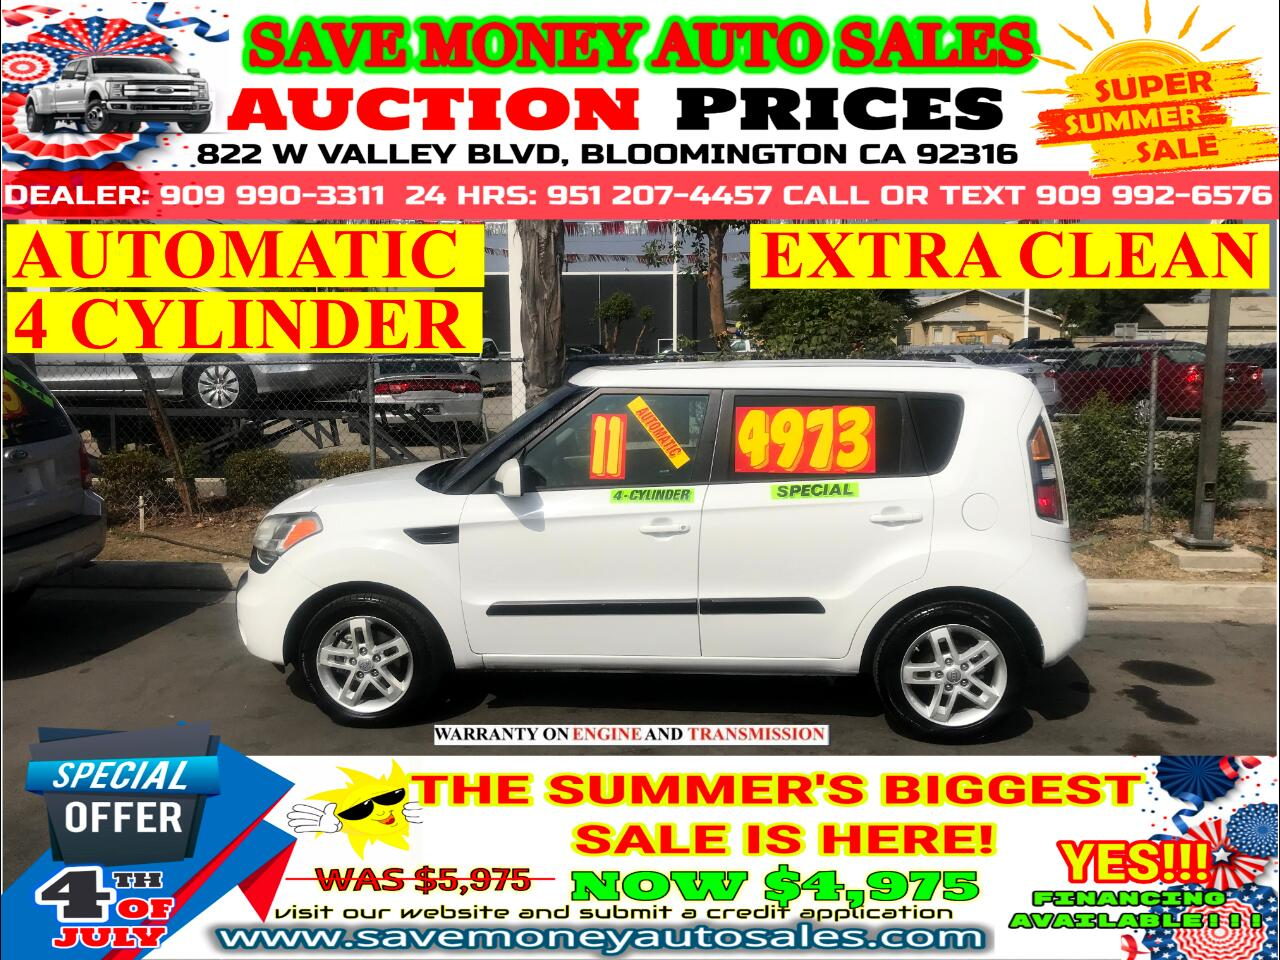 2011 Kia Soul 4 CYLINDER> AUTOMATIC> EXTRA CLEAN